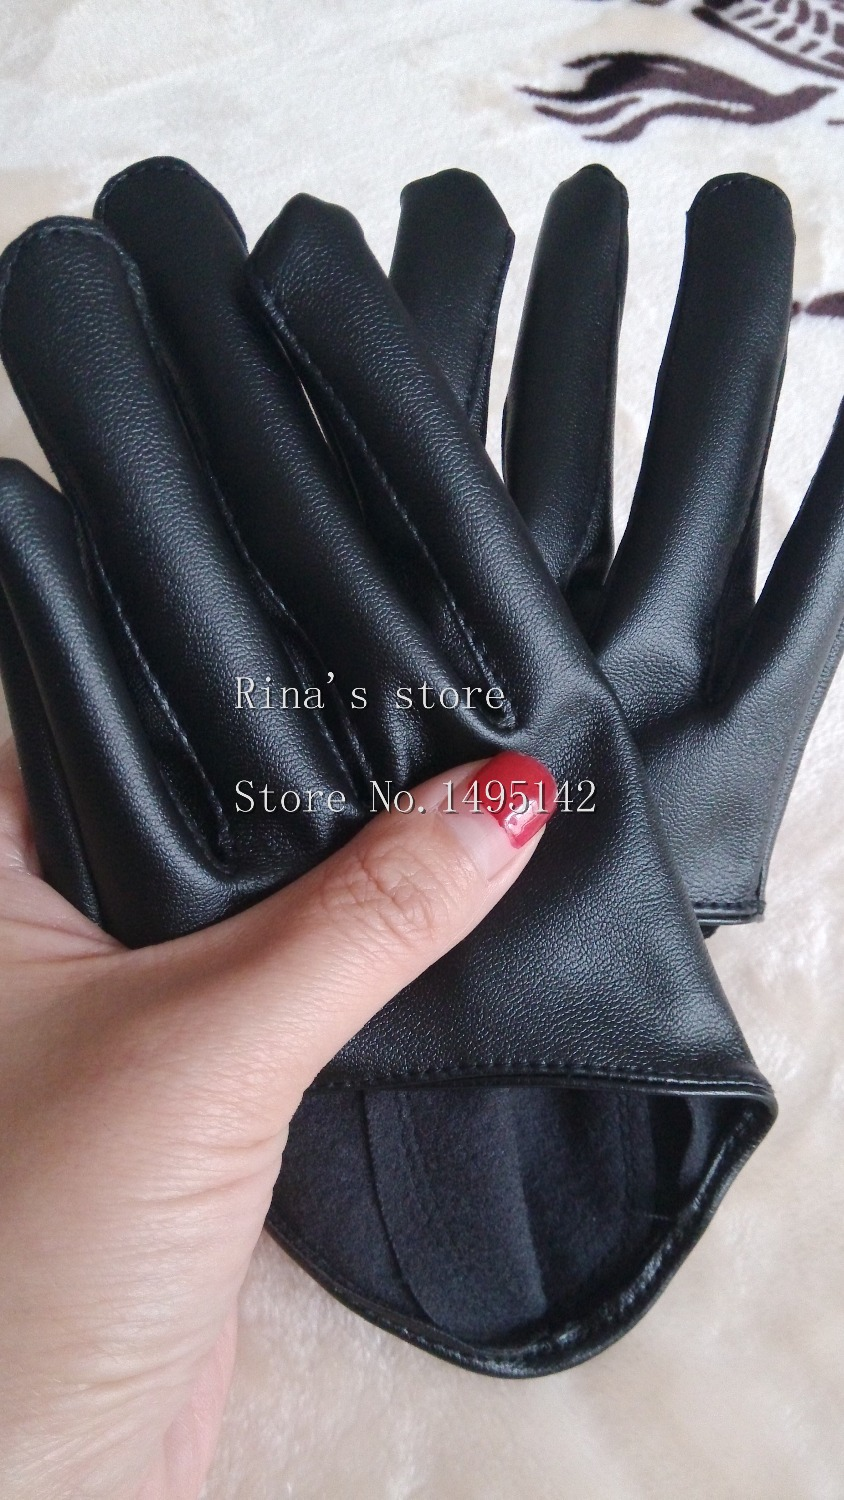 Womens leather gloves with touch screen fingers - Aliexpress Com Buy Women S Fashion Half Palm Gloves Black Touch Screen Gloves Short Design Pu Leather Motorcycle Driving Gloves From Reliable Leather